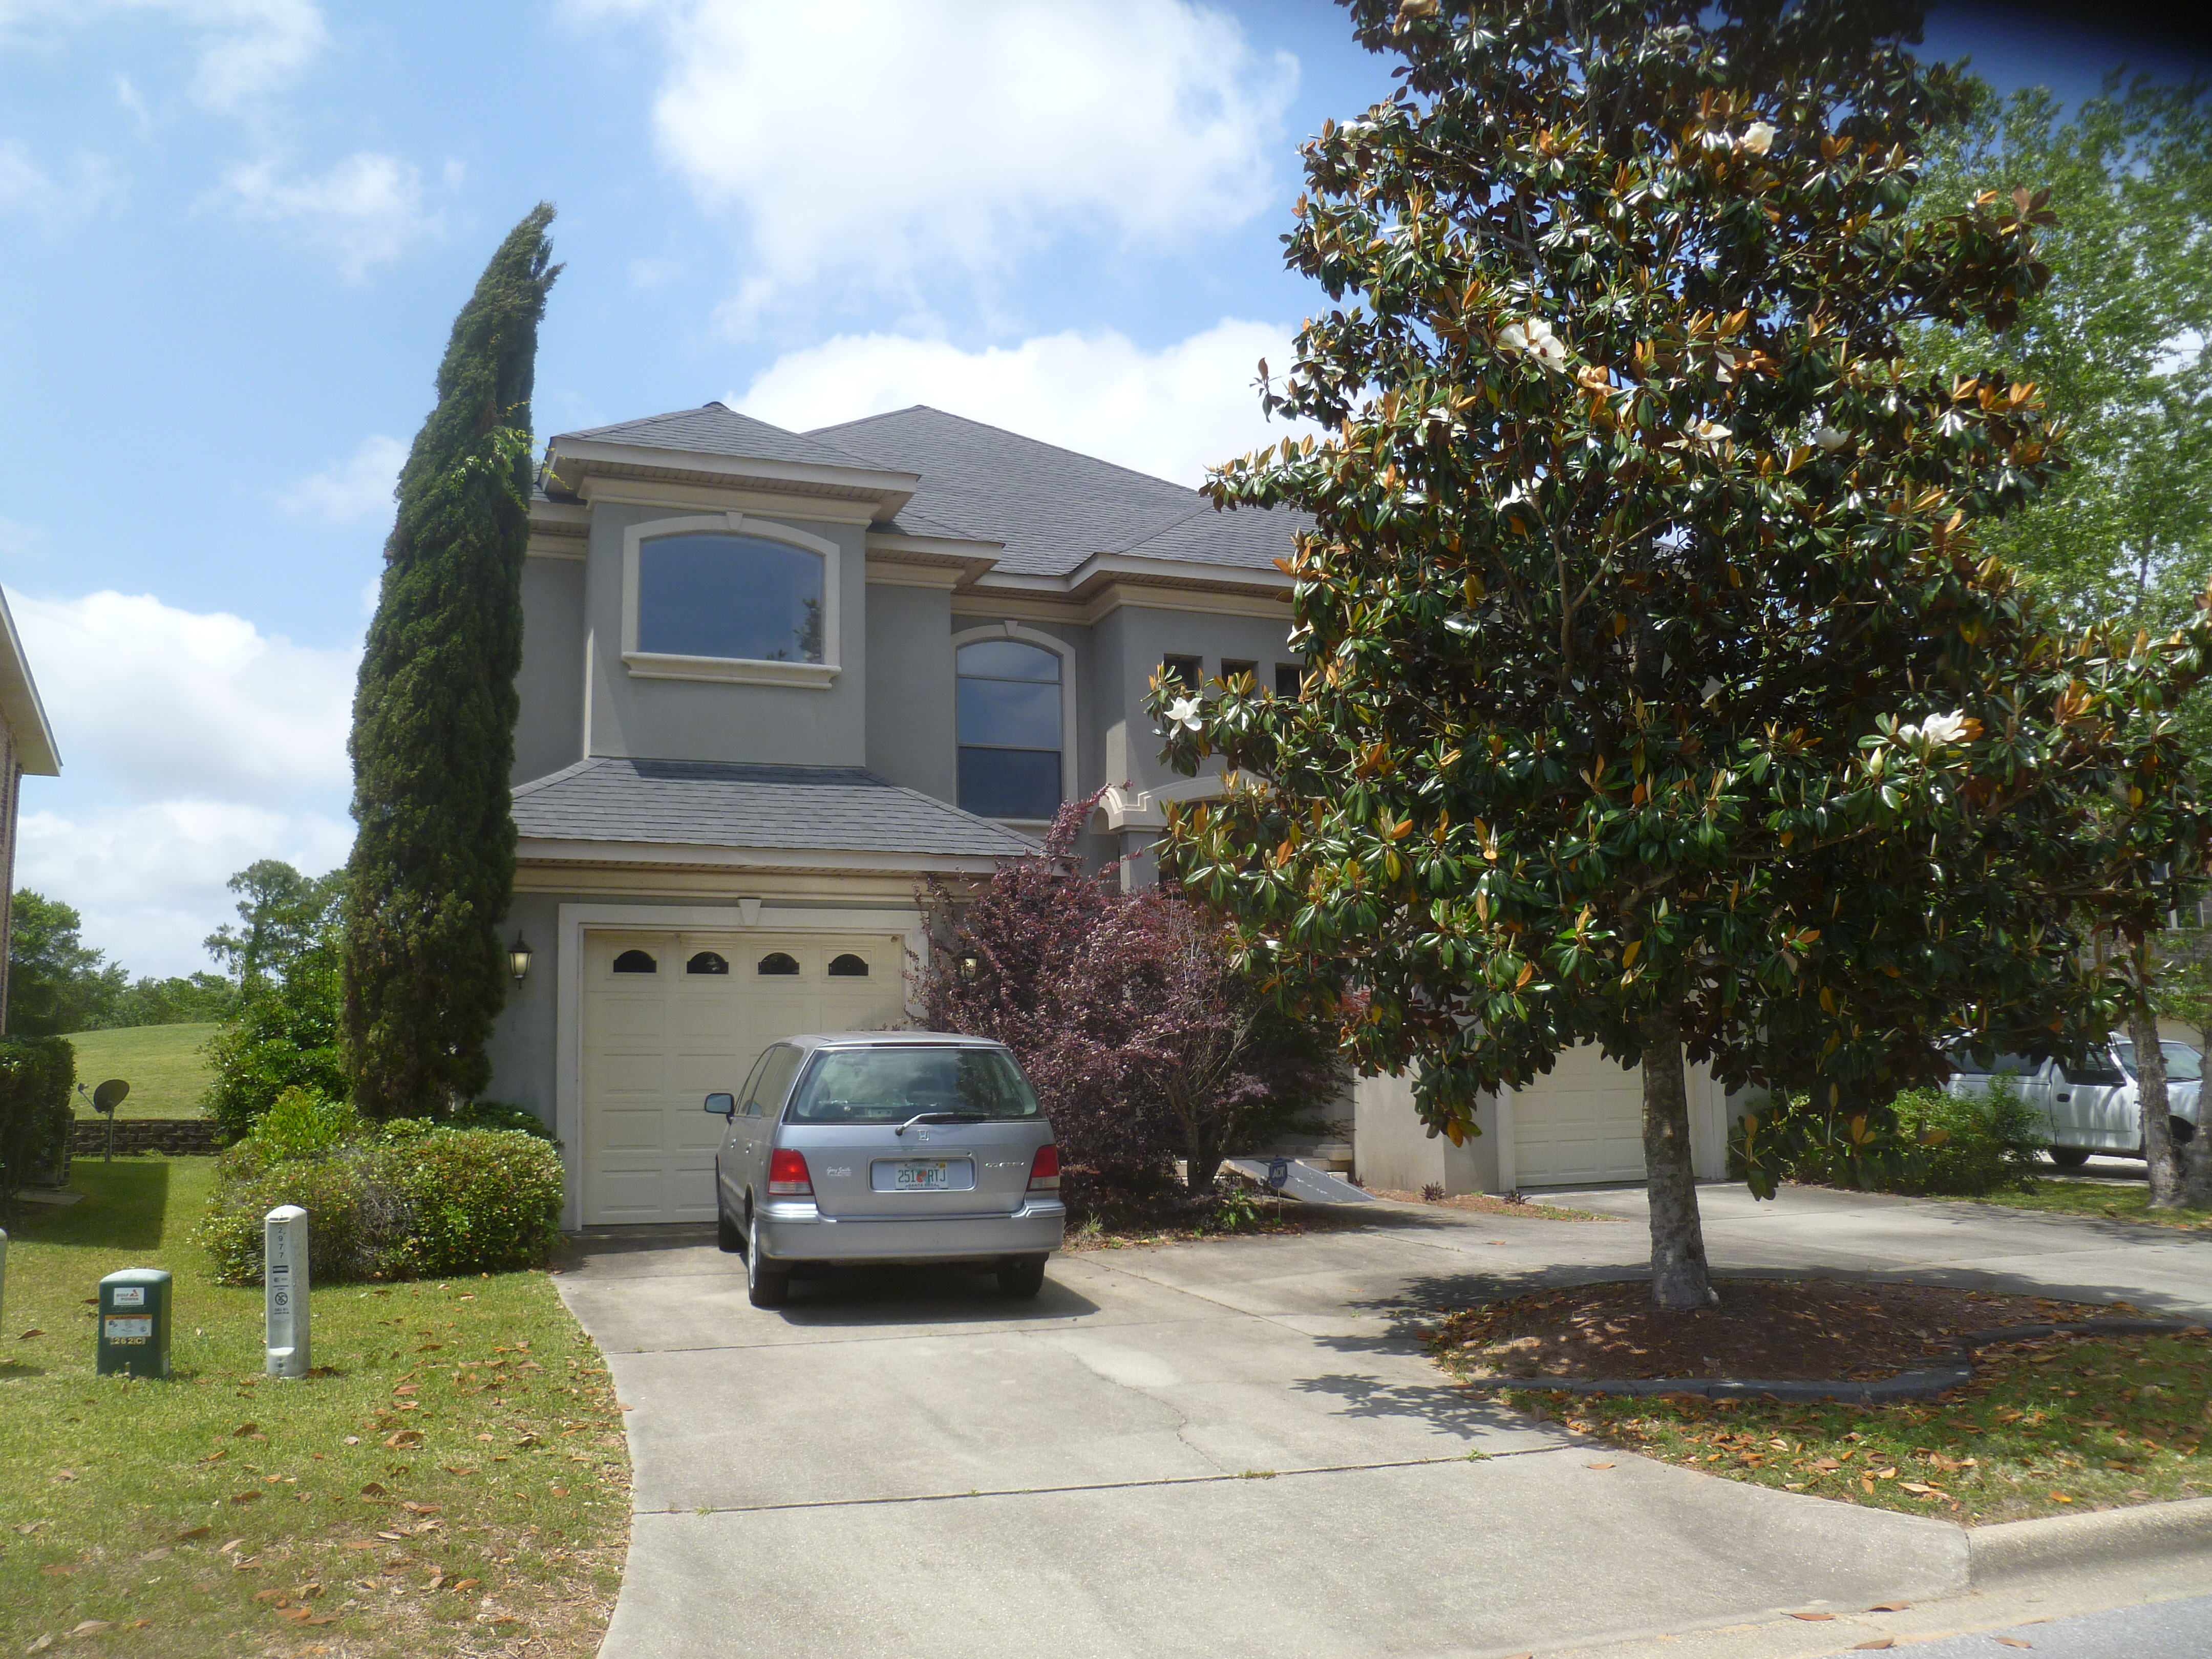 3BR, 3Bath Single Family residence with 2,768SF